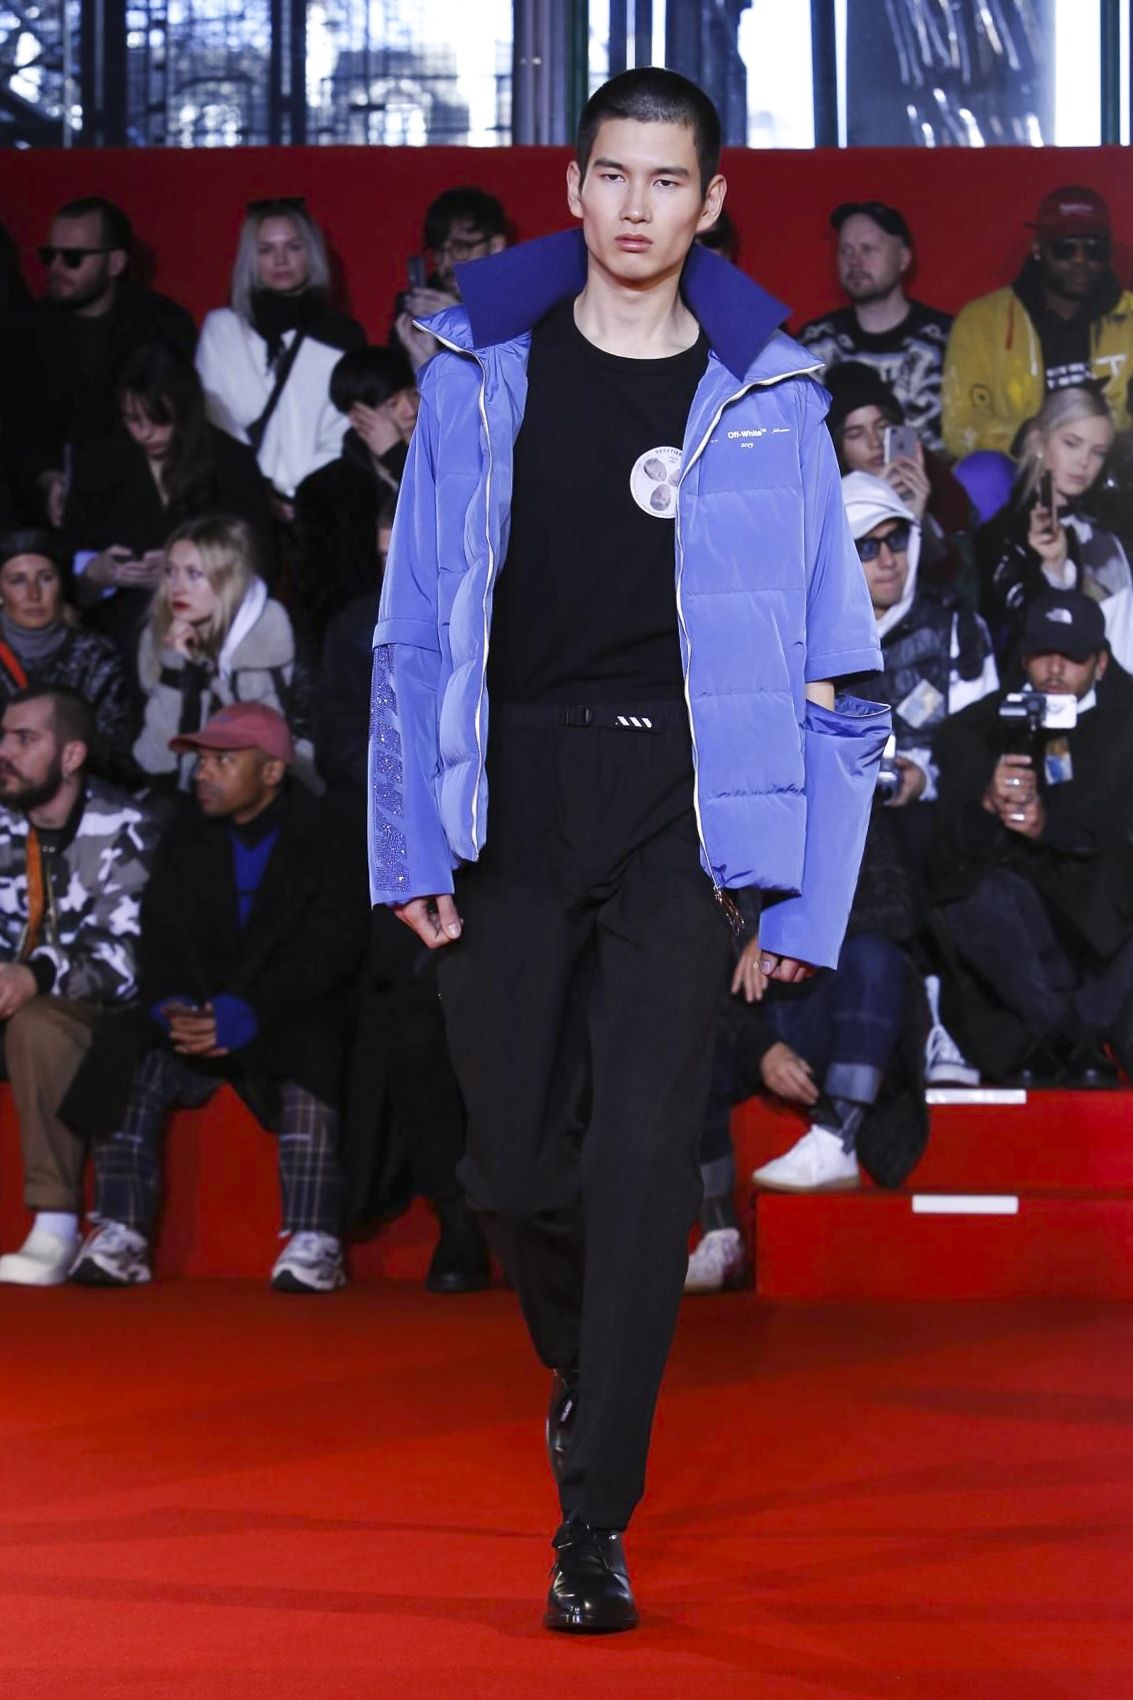 b8fb7369bff50 Off White Menswear Fall Winter 2018 Paris  OffWhite  PFW  parisfashionweek   menswear  runway  fashion